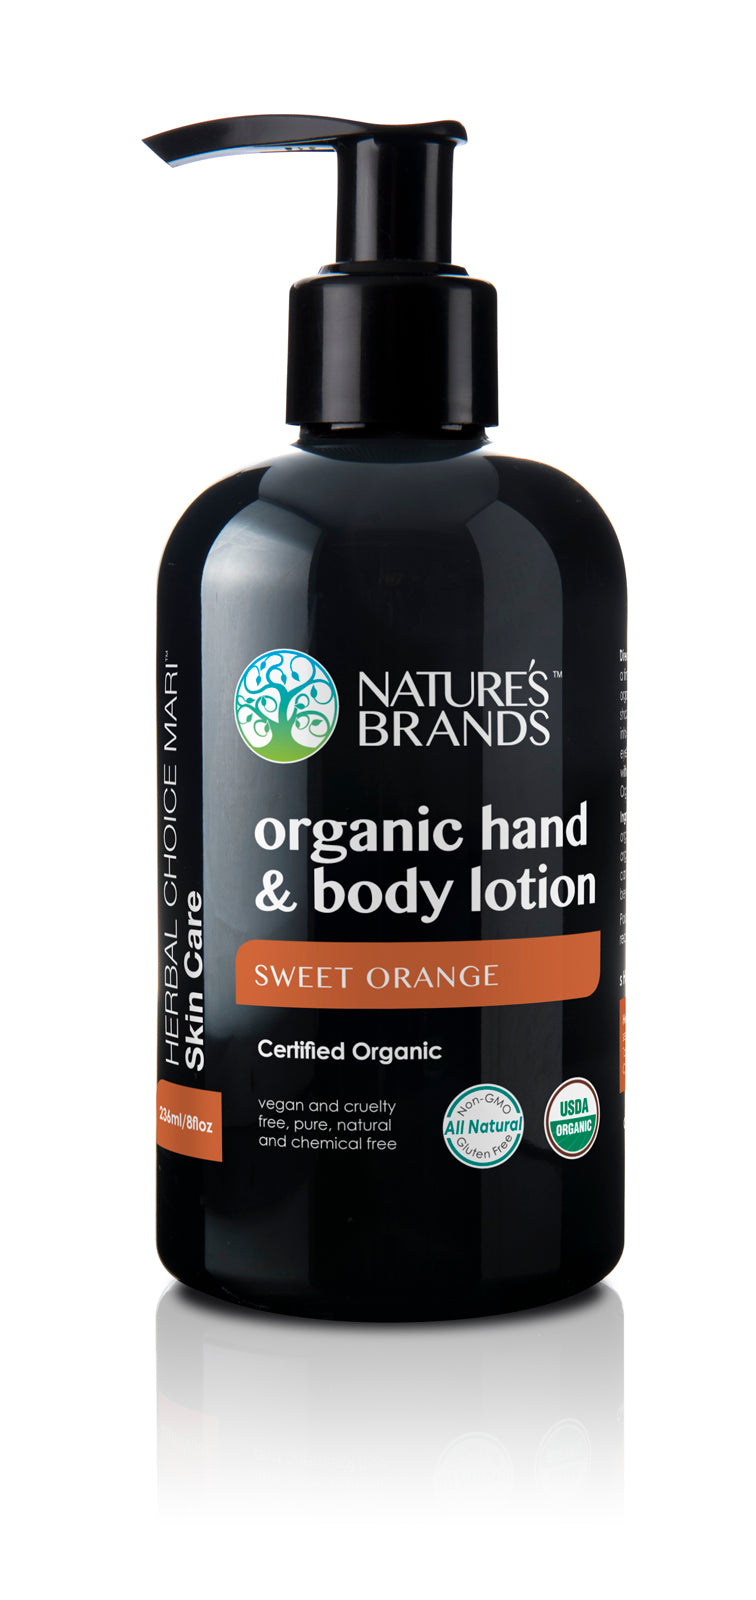 Herbal Choice Mari Organic Hand And Body Lotion, Sweet Orange - Herbal Choice Mari Organic Hand And Body Lotion, Sweet Orange - Herbal Choice Mari Organic Hand And Body Lotion, Sweet Orange